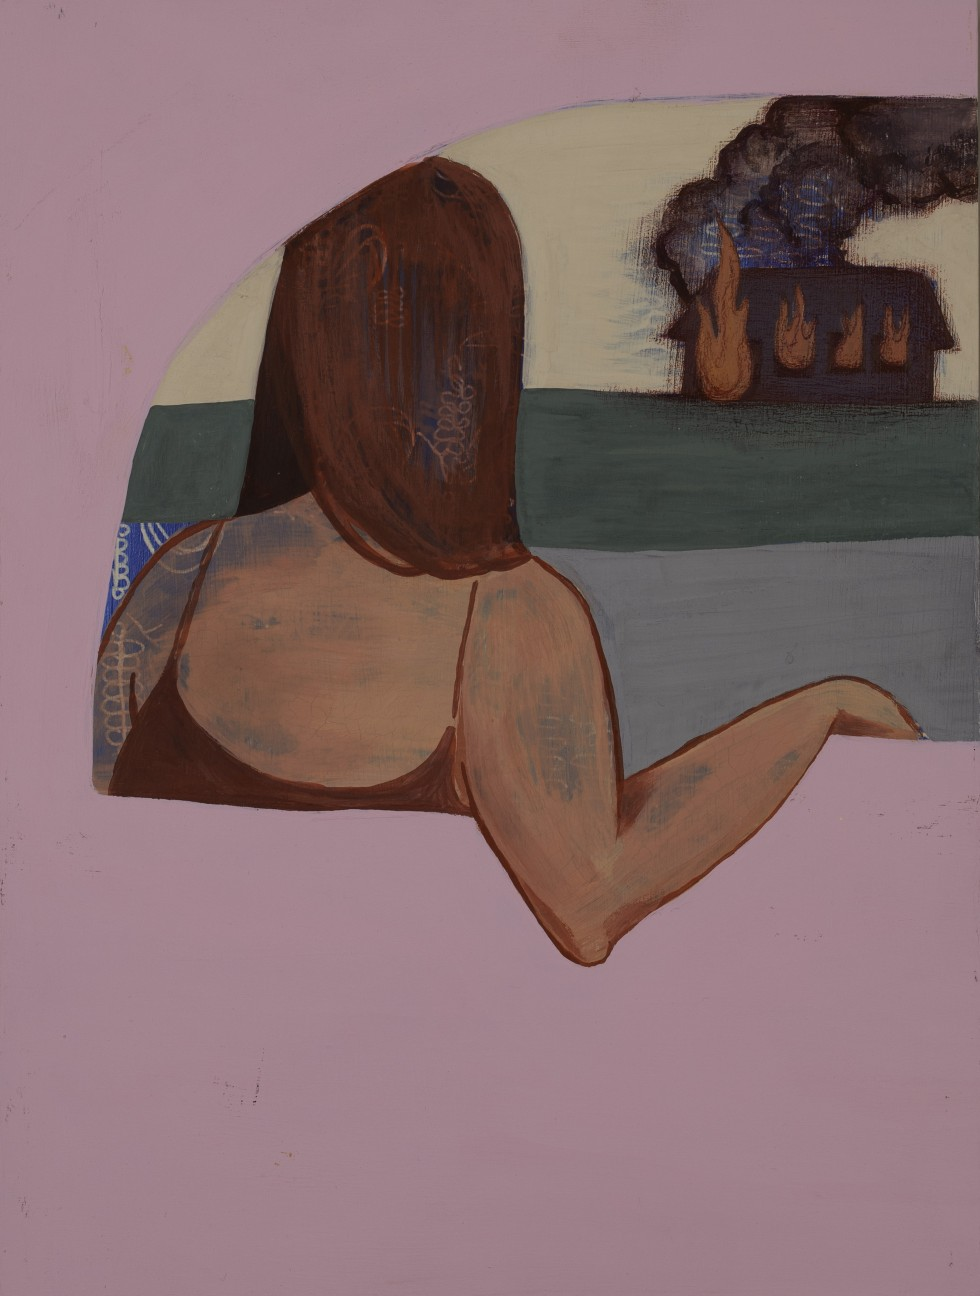 A young  woman looks out at a barn that is smoldering far in the distance. The woman's back is turned towards the viewer. The smoke from the barn and the woman's skin is translucent in places to reveal a blue patterning of lines.